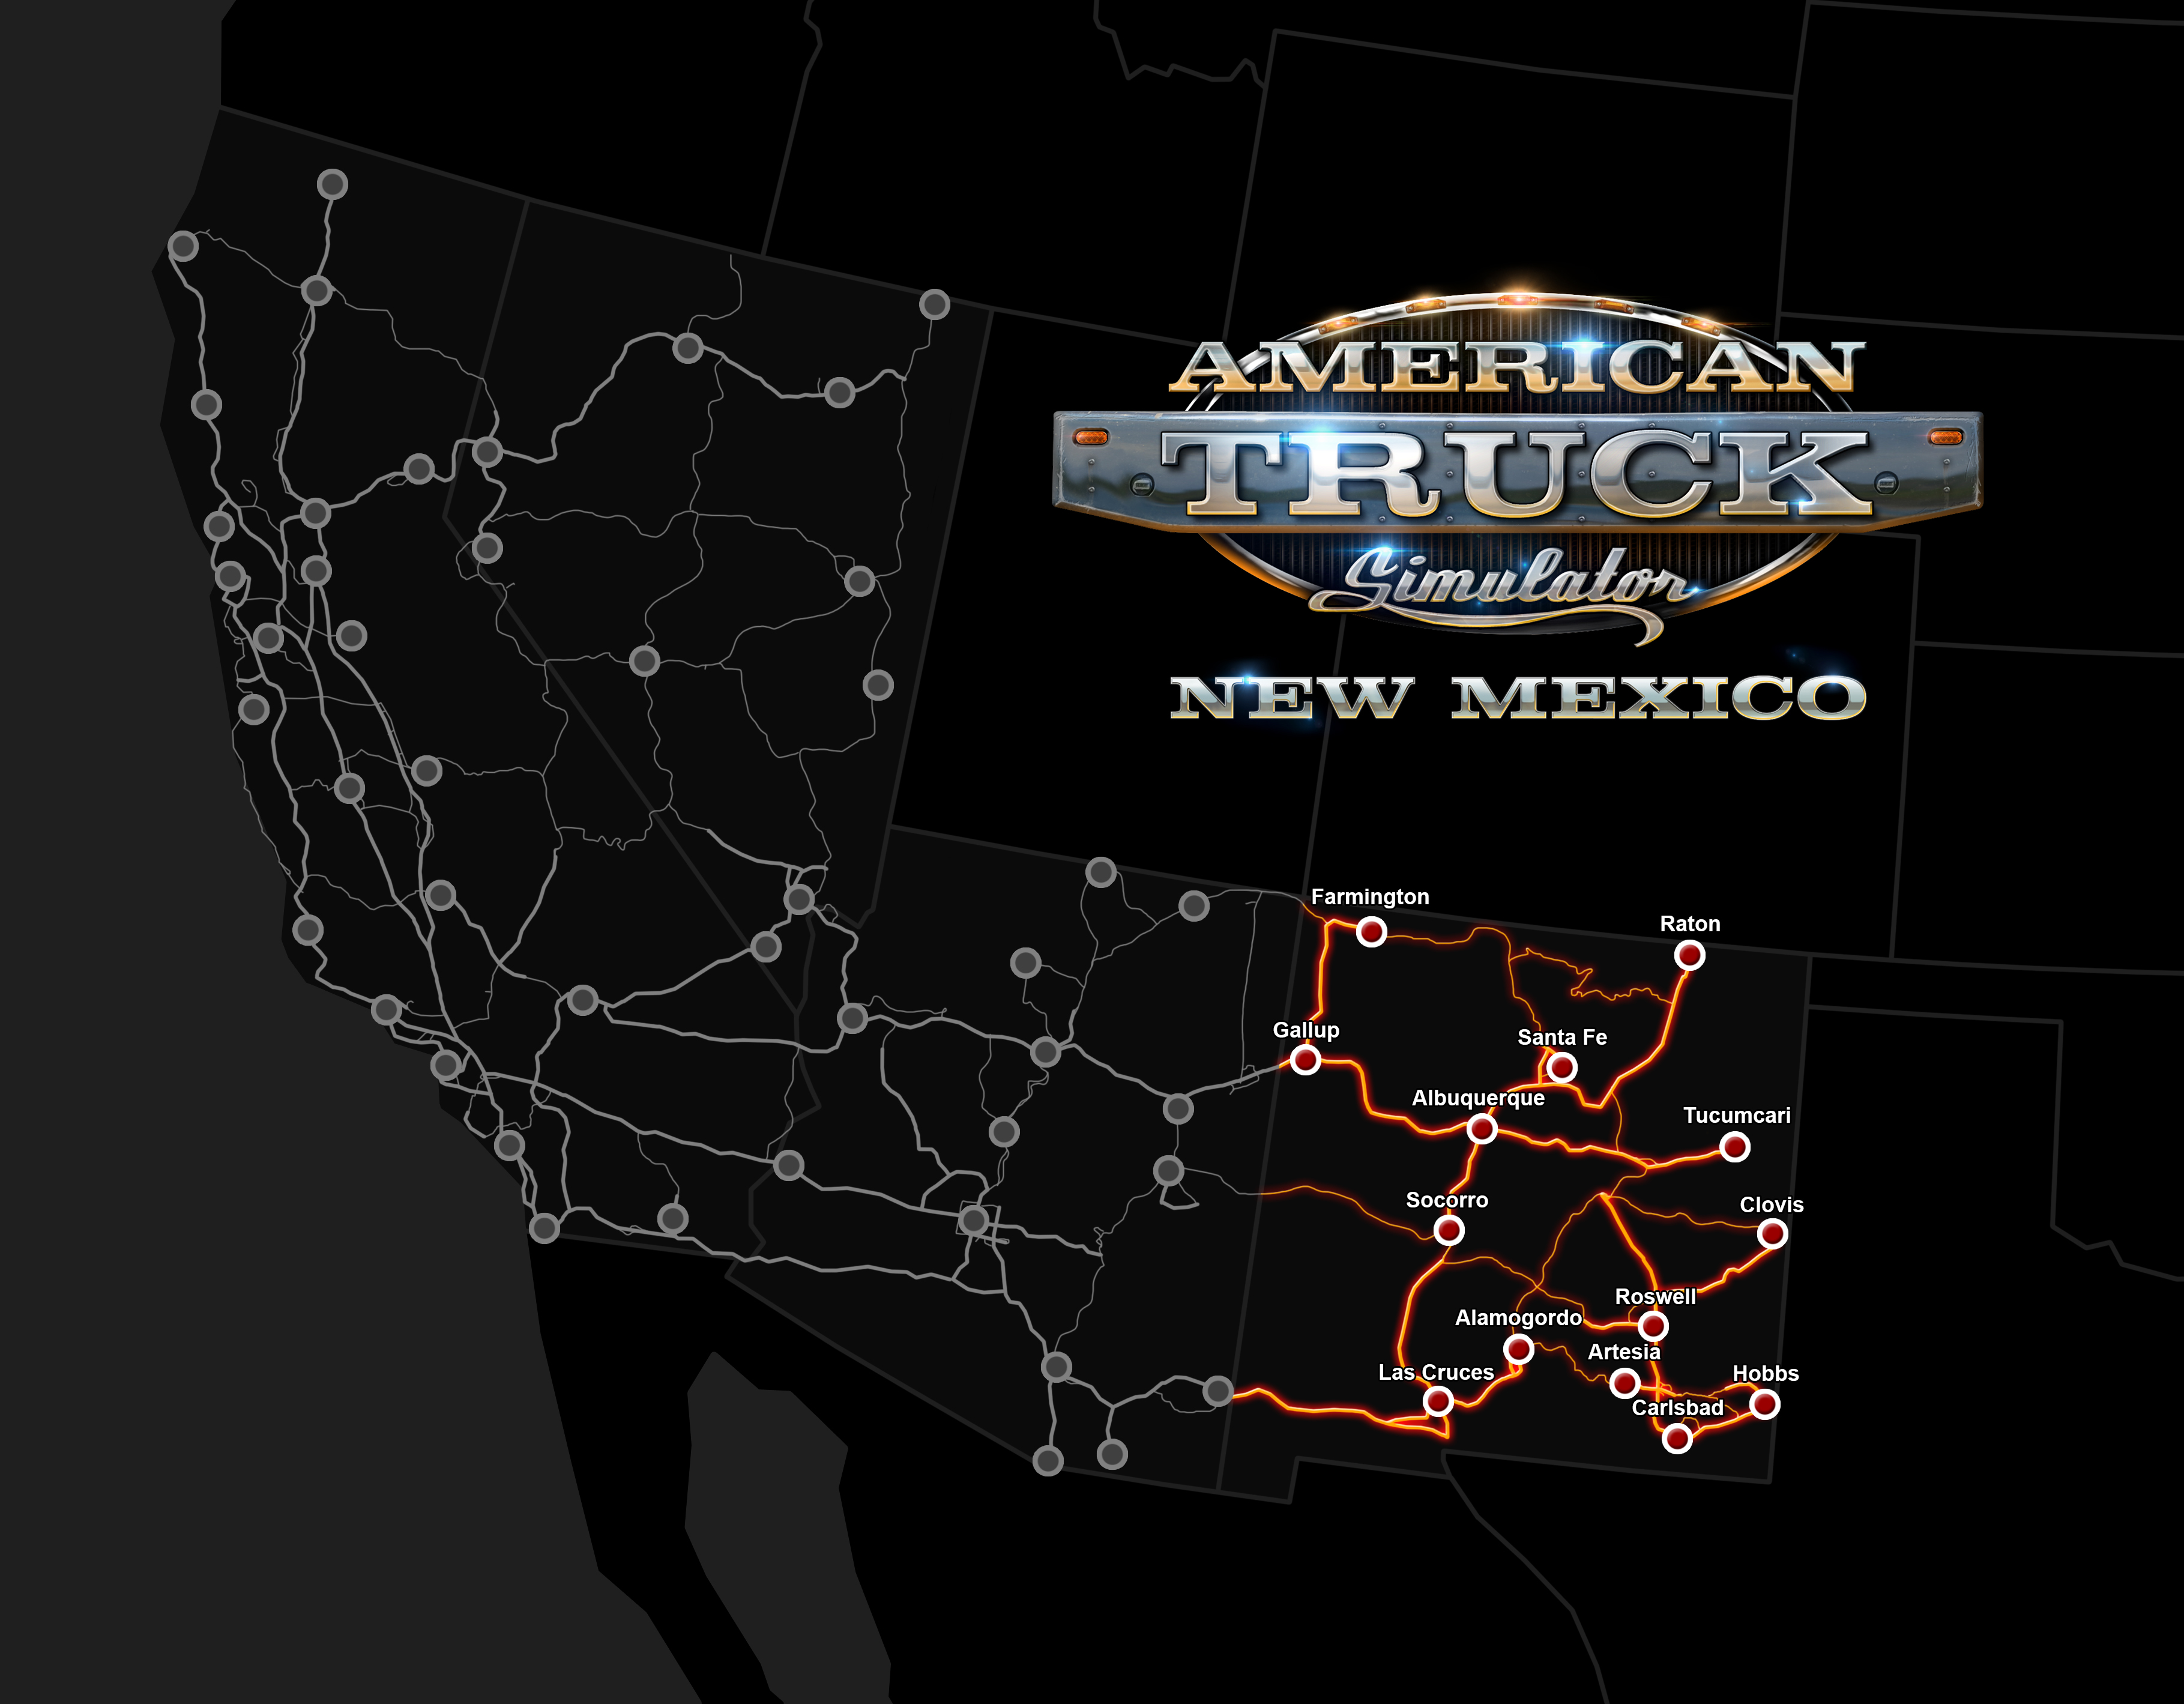 American Truck Simulator   New Mexico on Steam